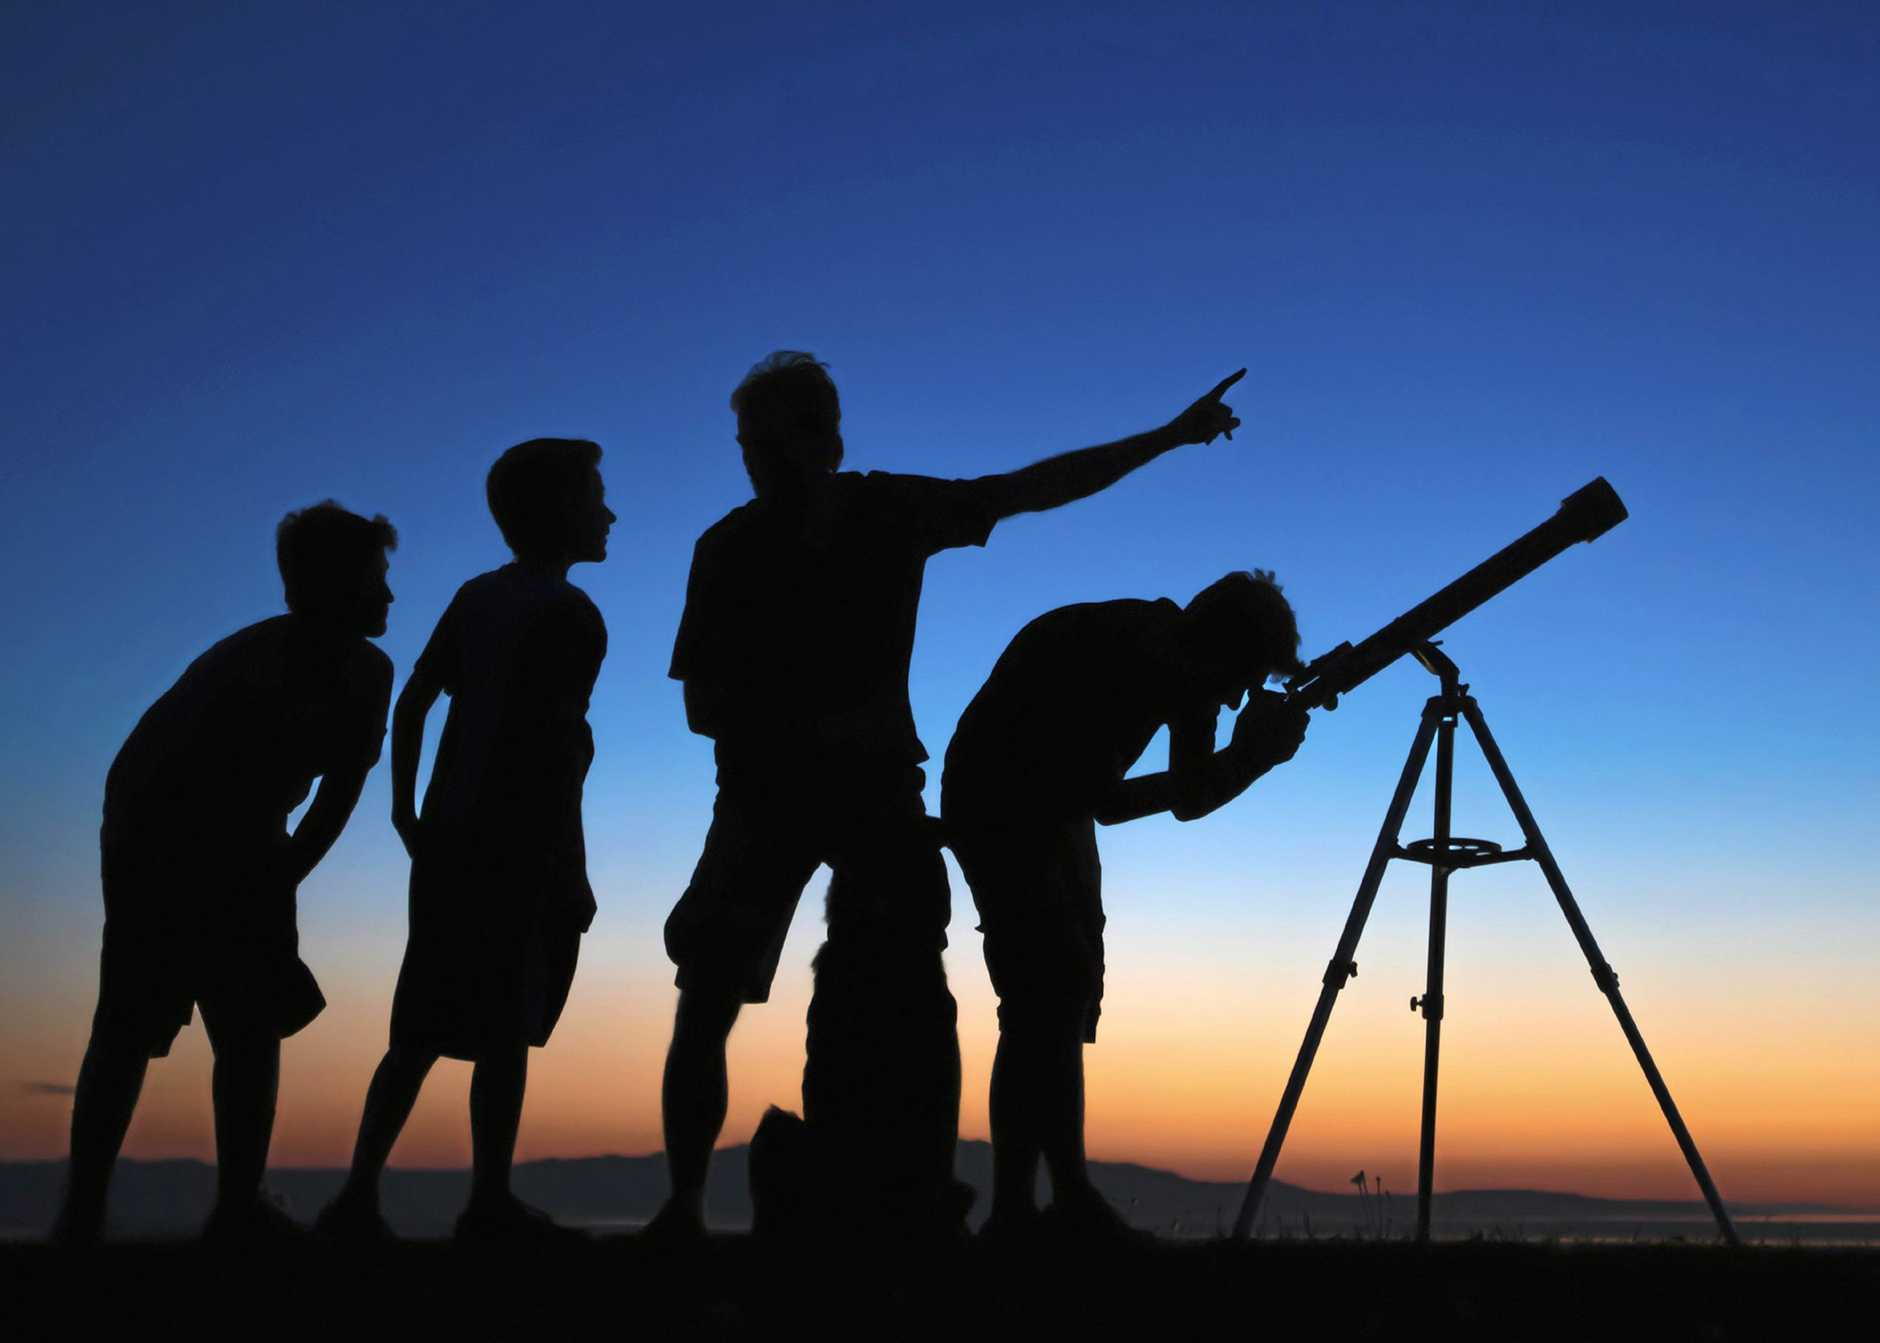 TAKE A LOOK: Dad kids looking through a refractor telescope.